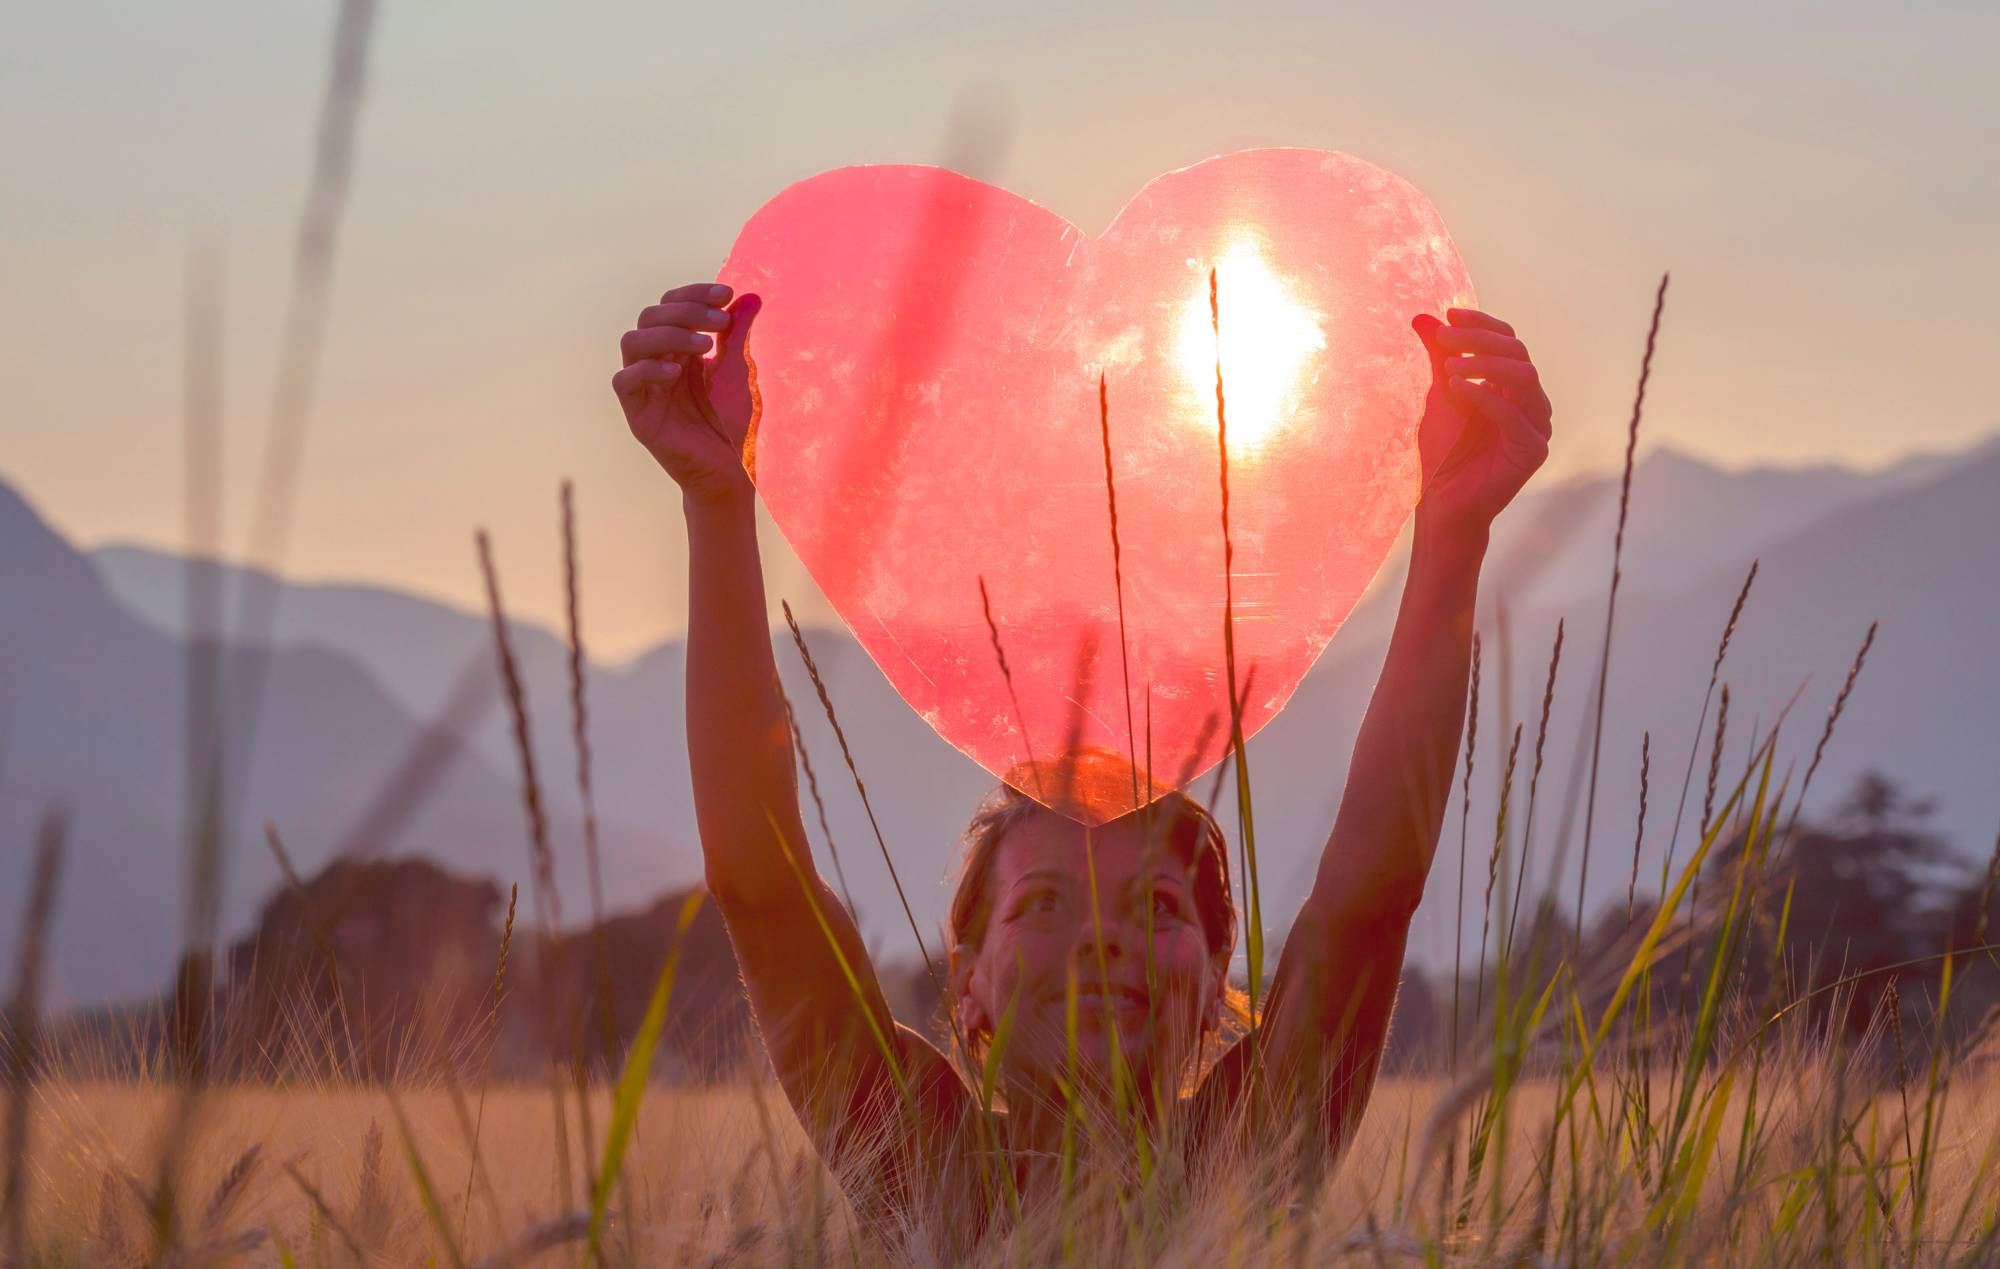 VP 4260316, A Woman Holds Up A Red Heart With The Sun To Shine Through, Locarno, Ticino, Switzerland. Fotograf: Mats Silvan